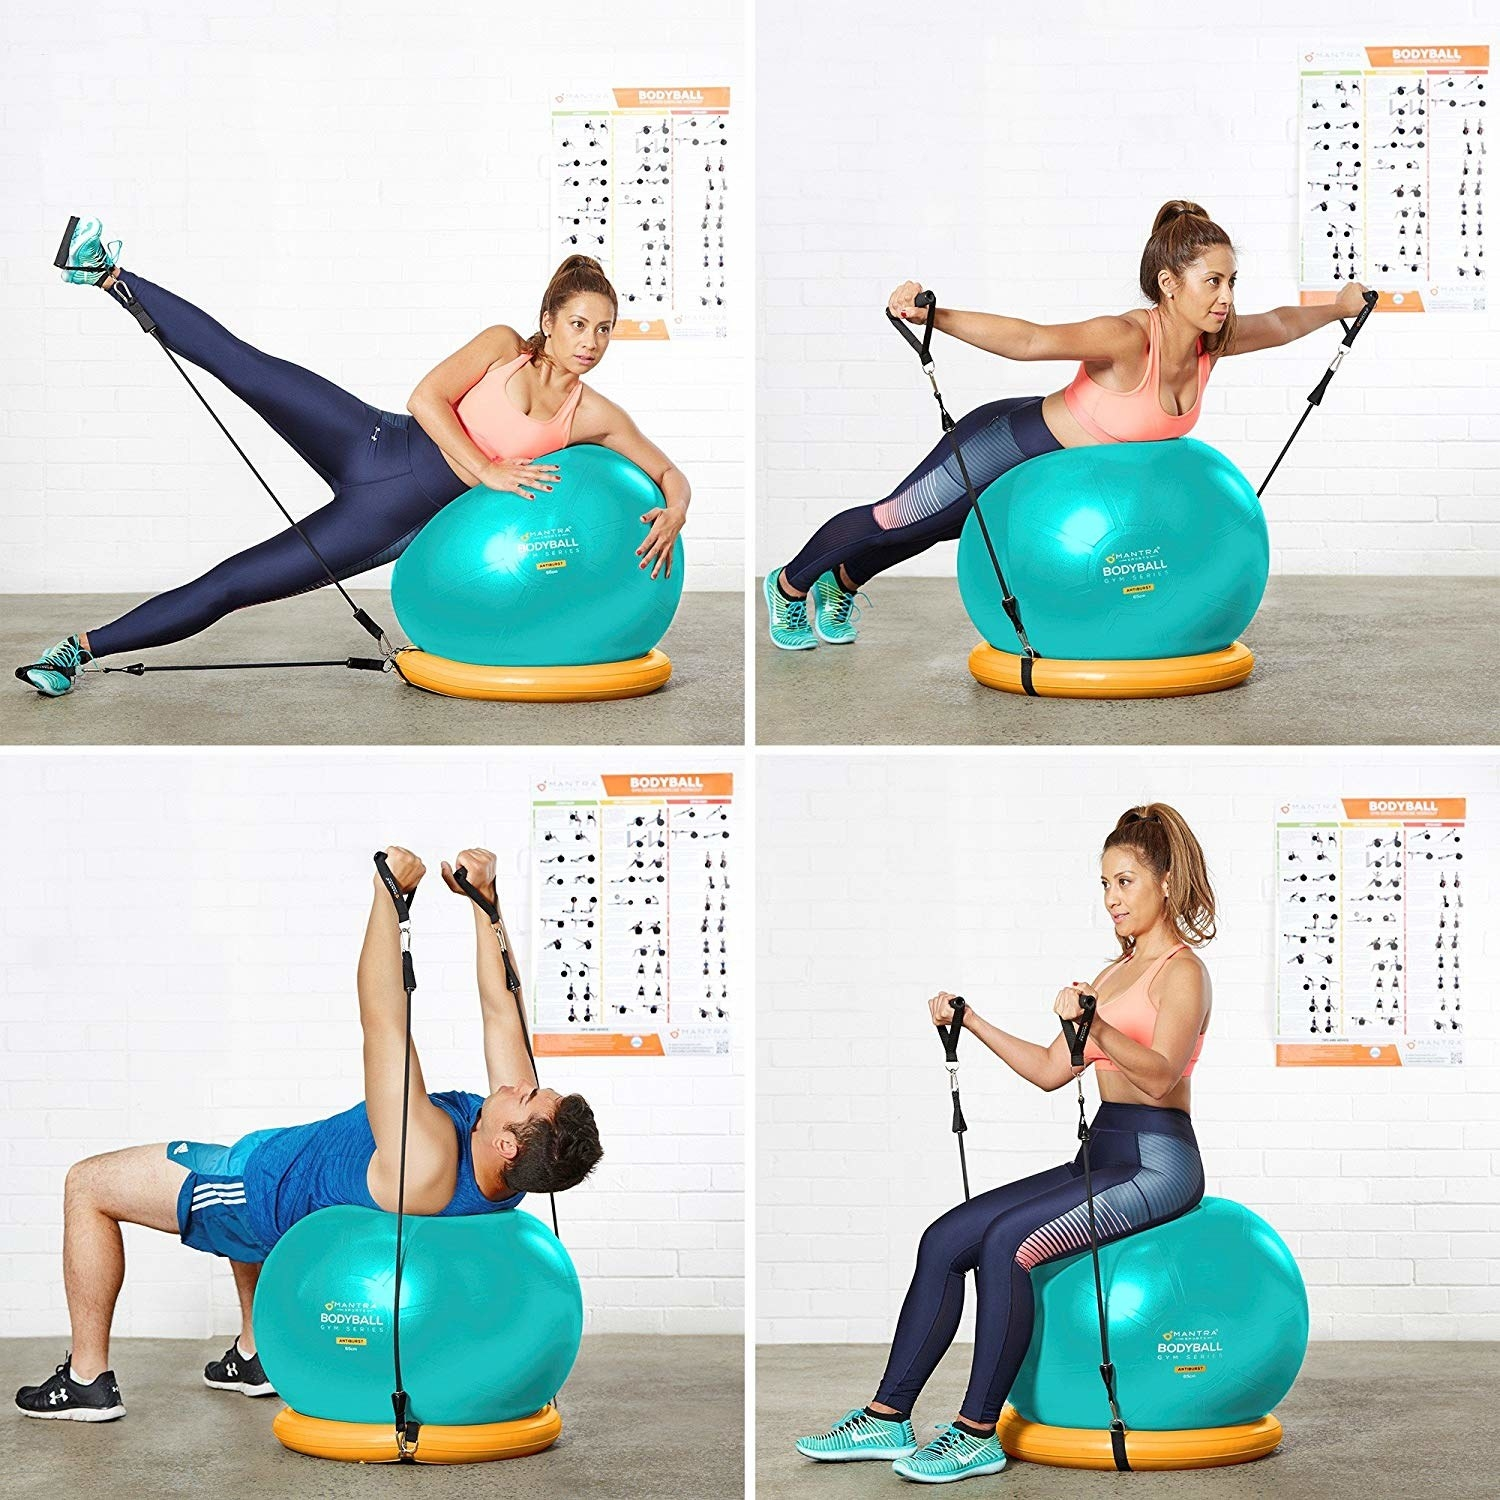 Four images of people working out with the large ball and straps in different ways